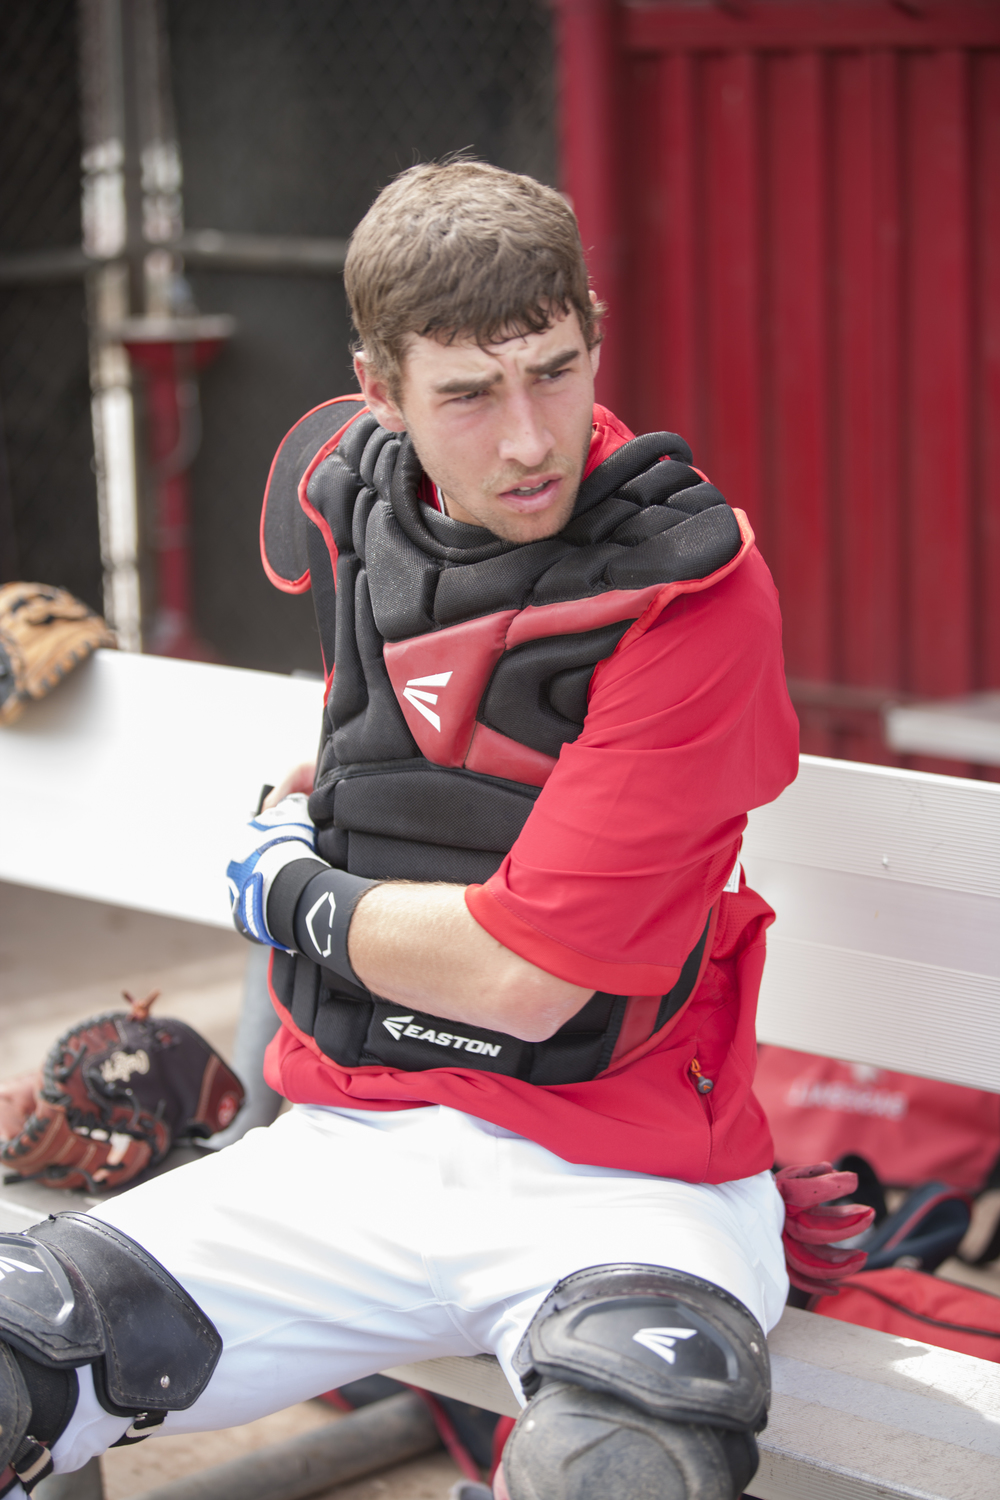 Evan Yeager suits up in a protective catcher's gear in the home team dugout at Joe Kelly Field on Tuesday, March 10, 2015. Woodland Hills, Calif.  Read the full story  here